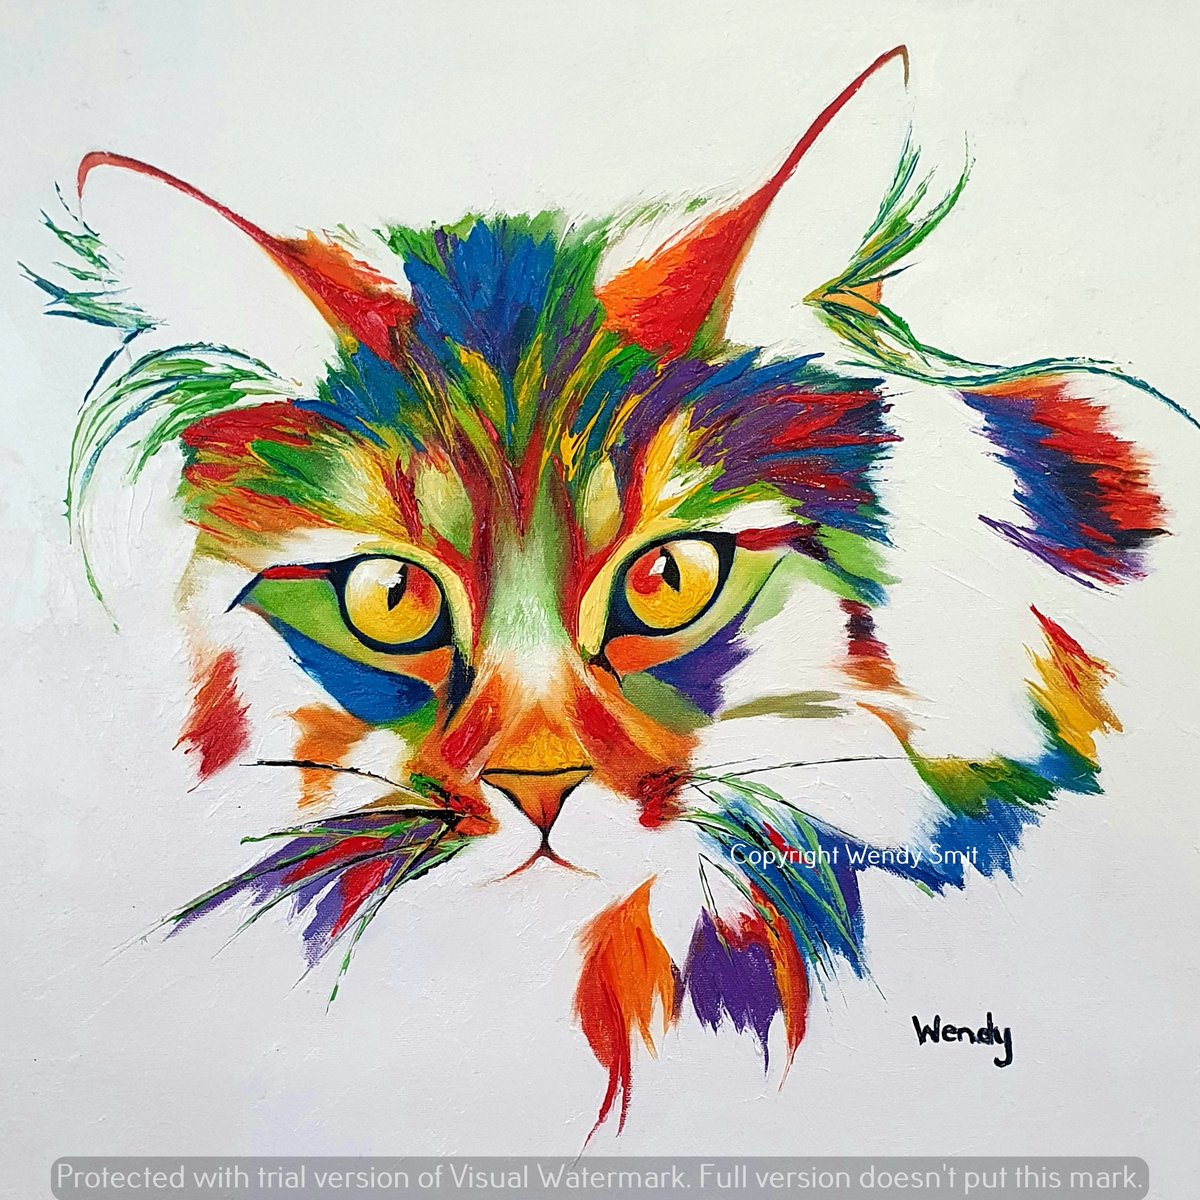 I had a number of requests for a Cat to be added to my 'paint bomb' series. My website: wendysart.co.za